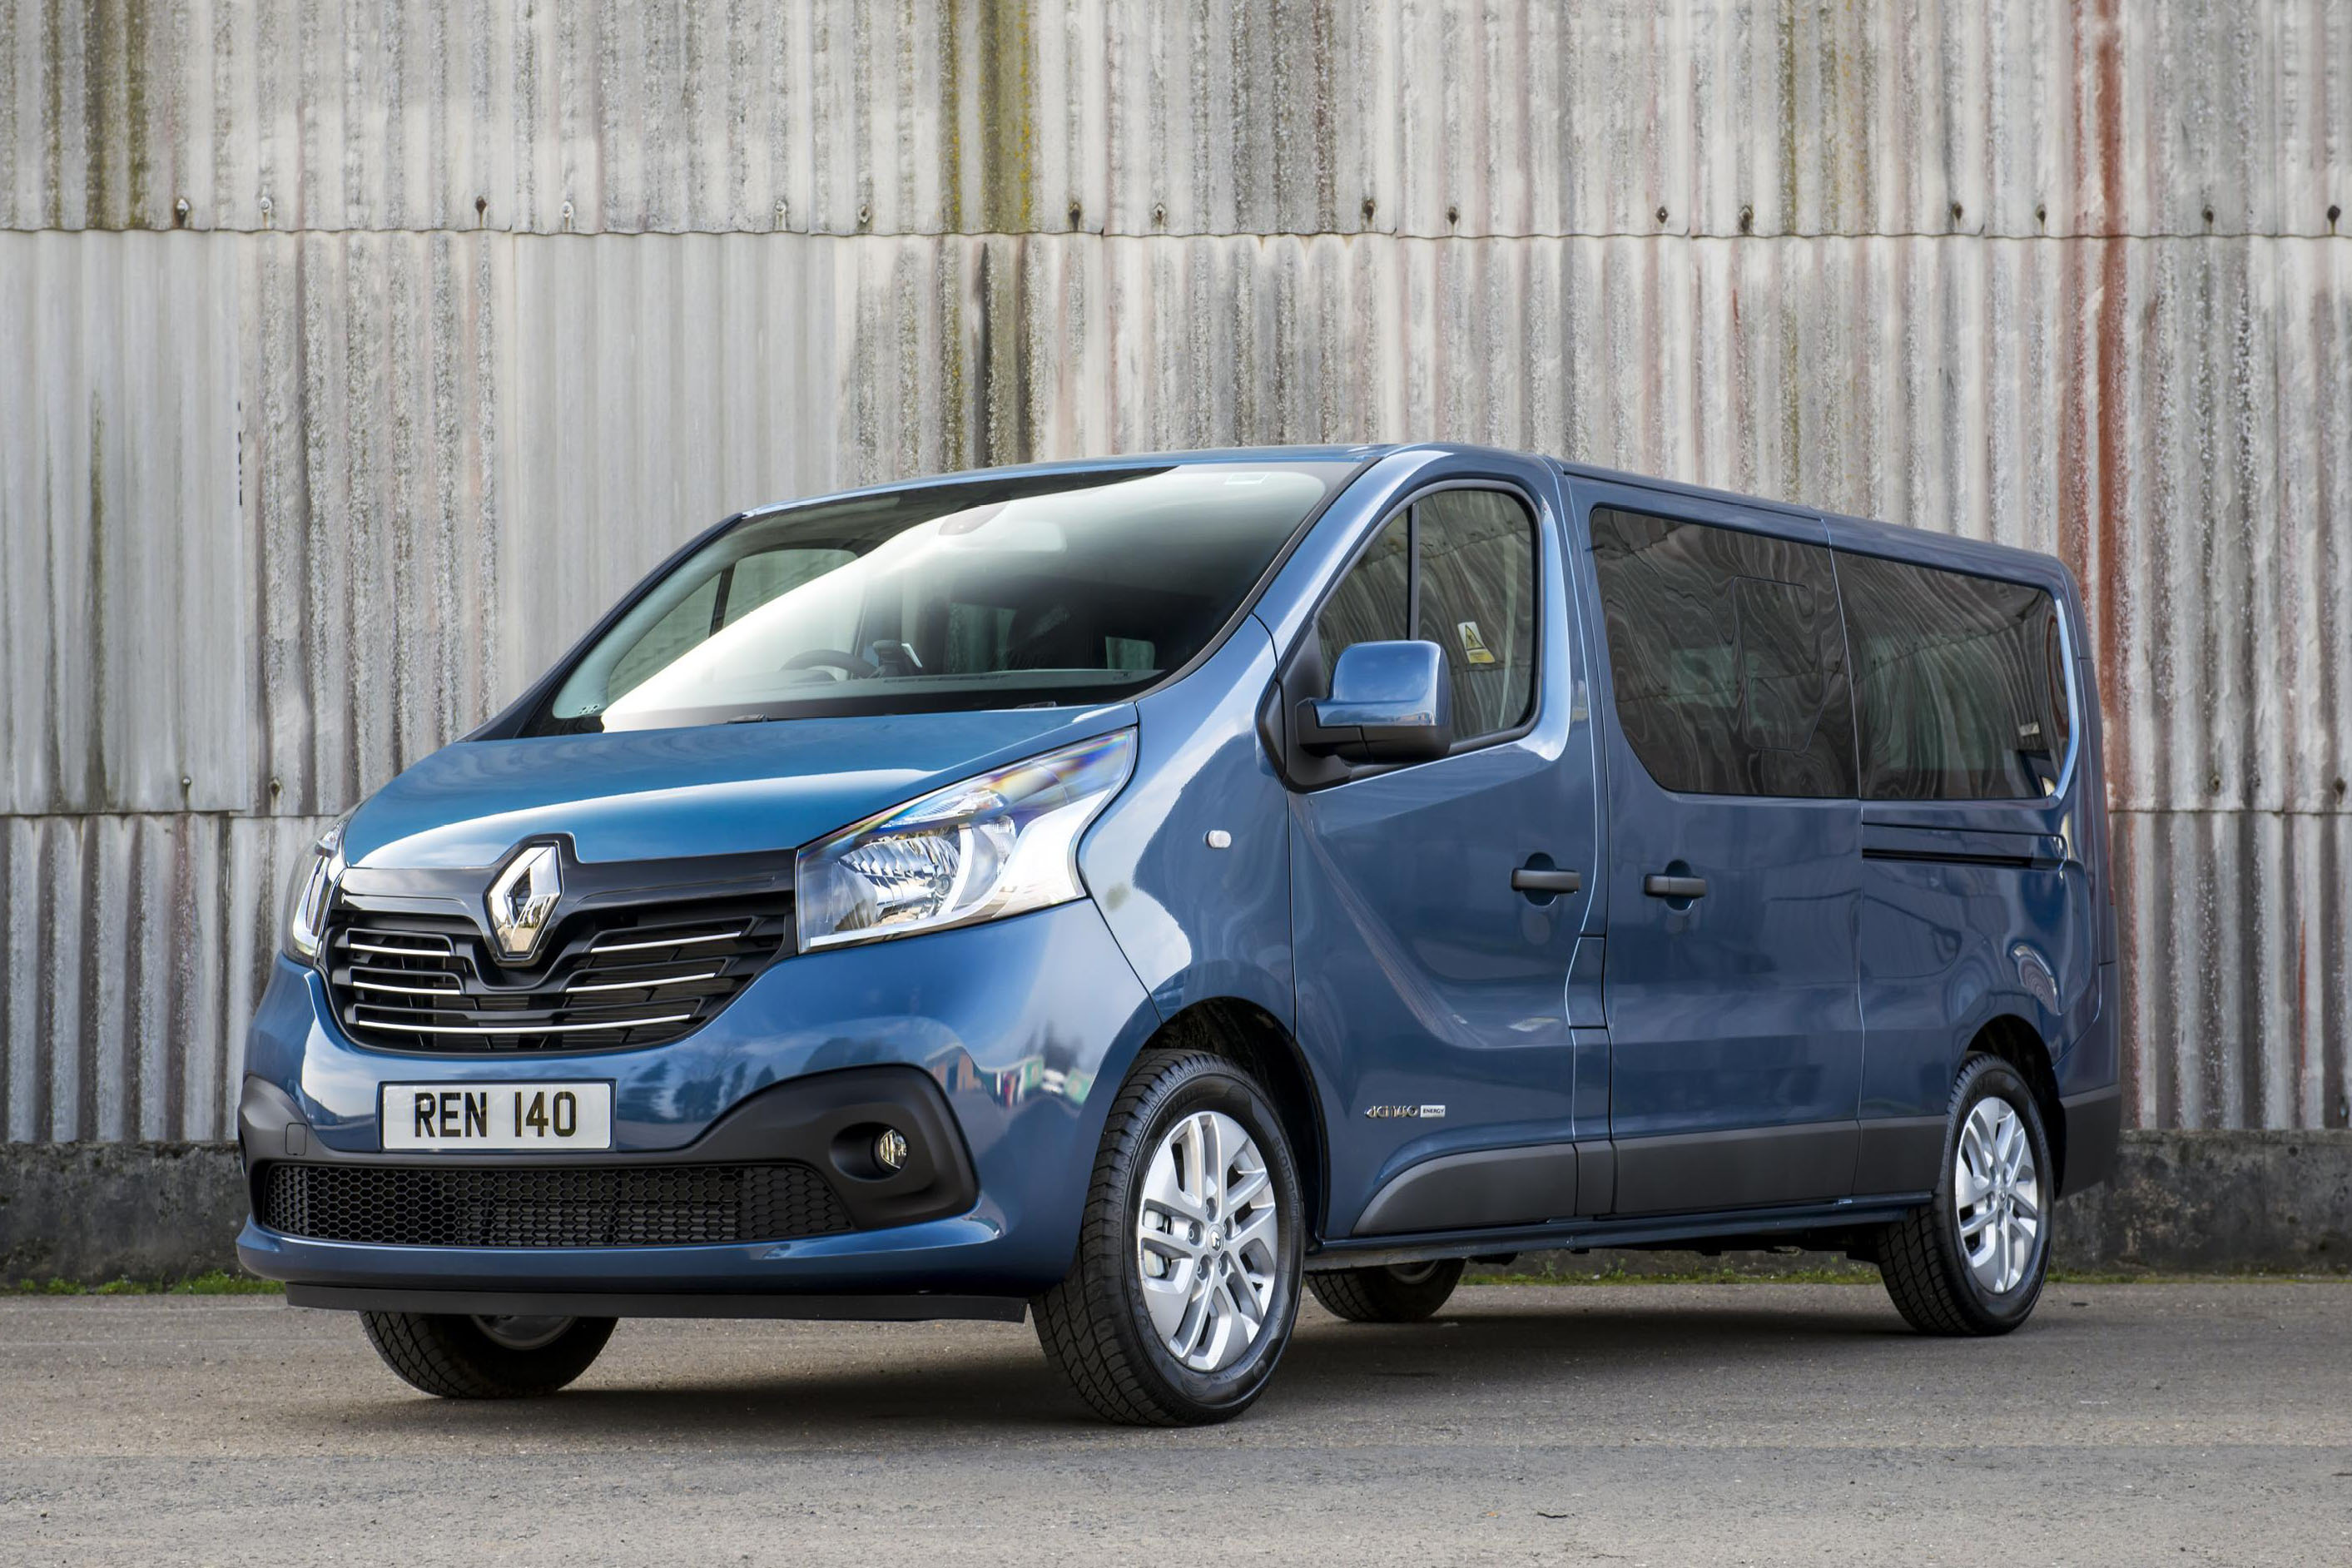 8 Passenger Cars for Sale Near Me Best Of Best 8 Seater Cars to now Pictures